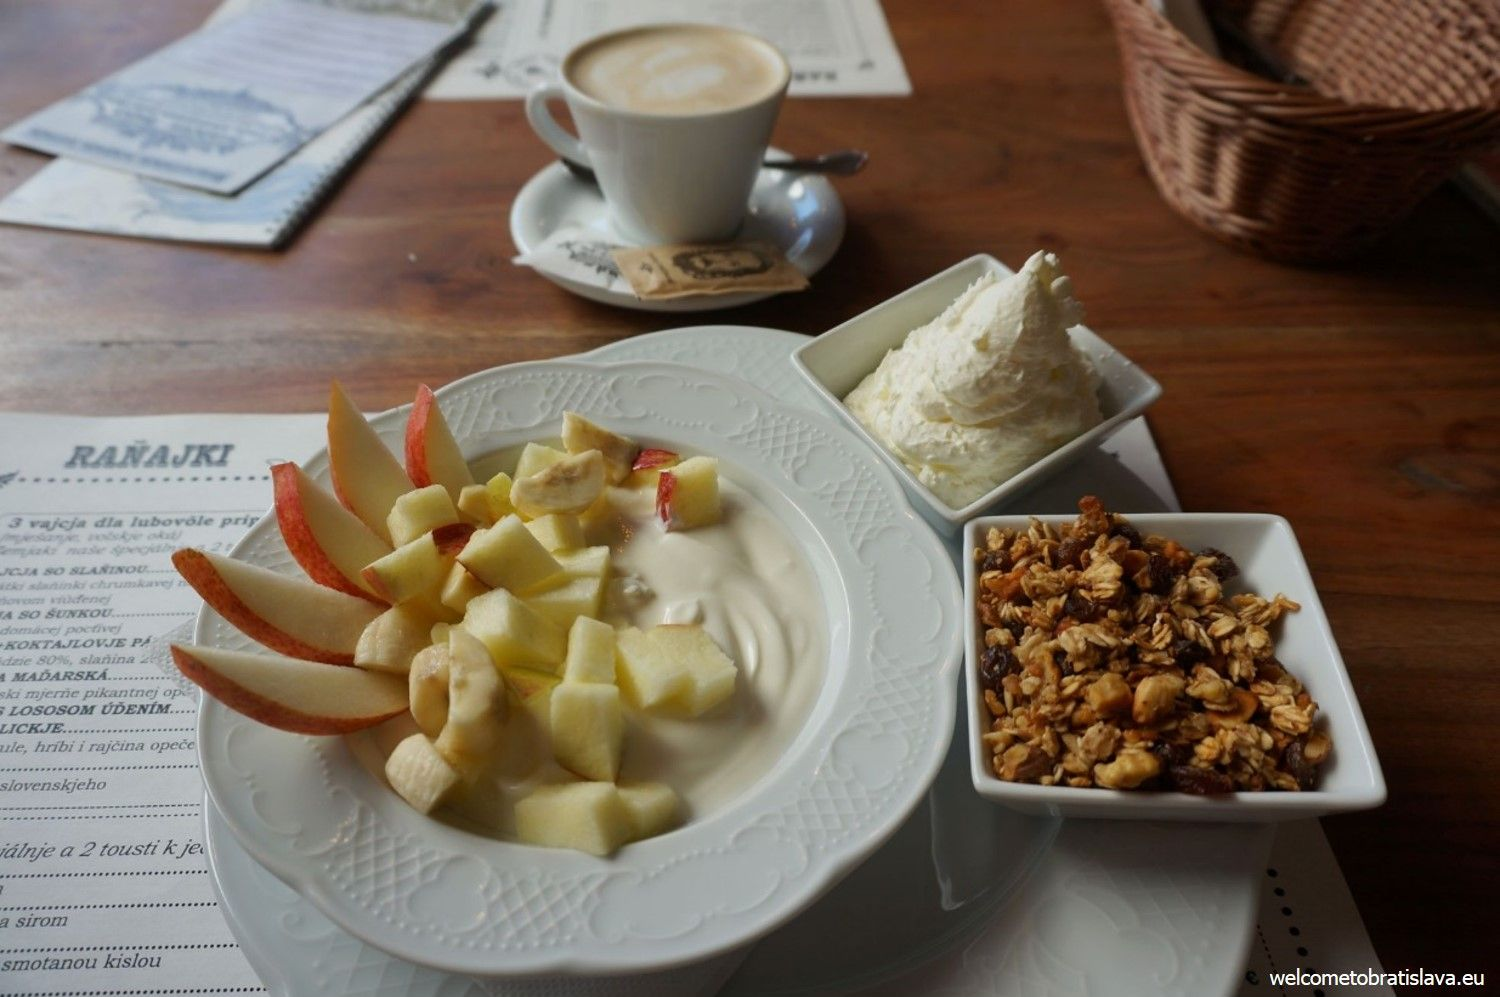 Yogurt with granola and fruit